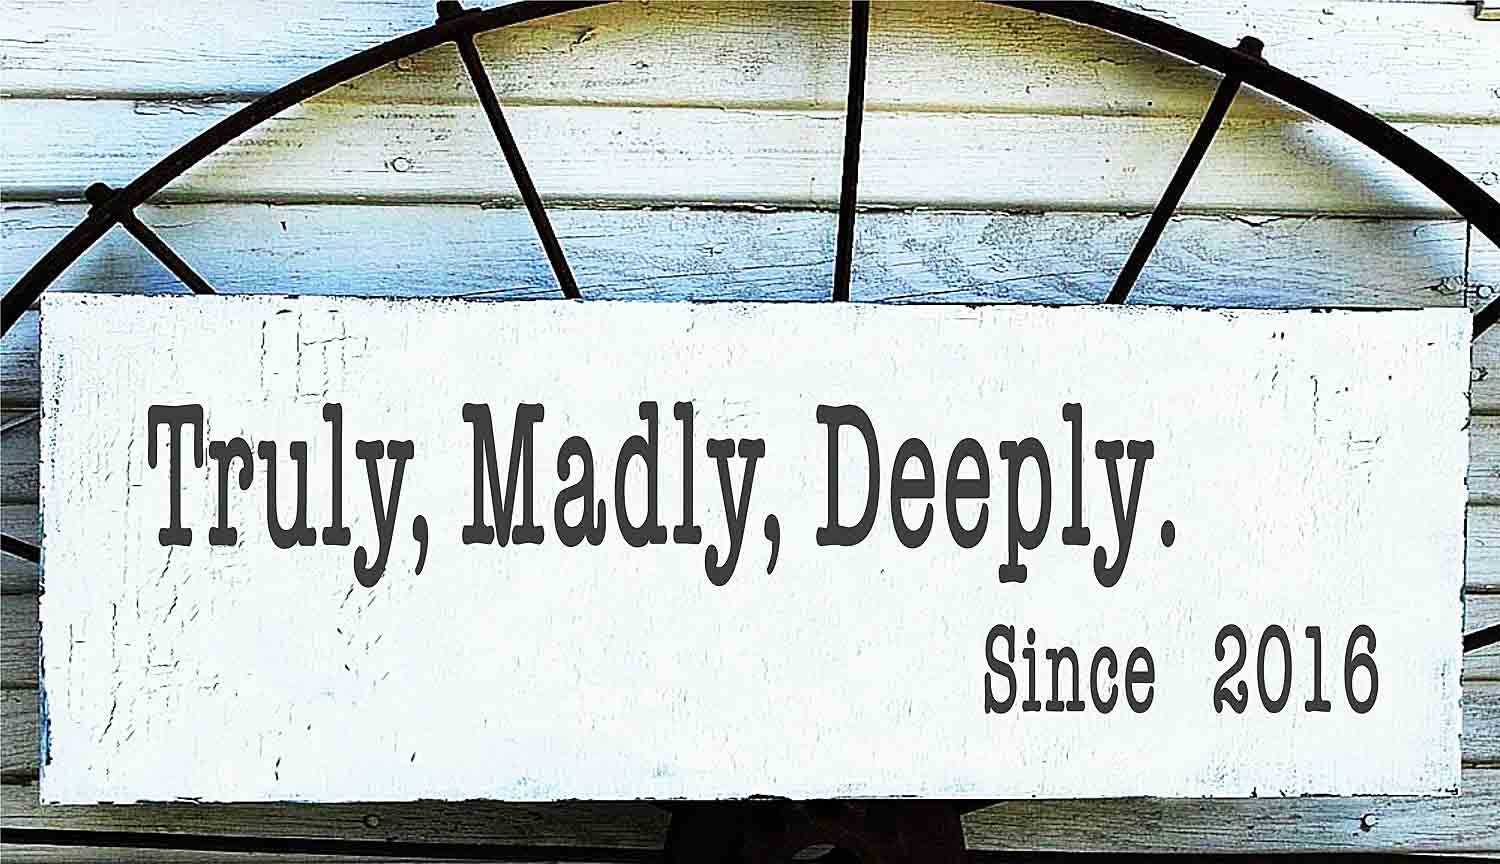 Truly madly deeply dating - No strings dating discount code